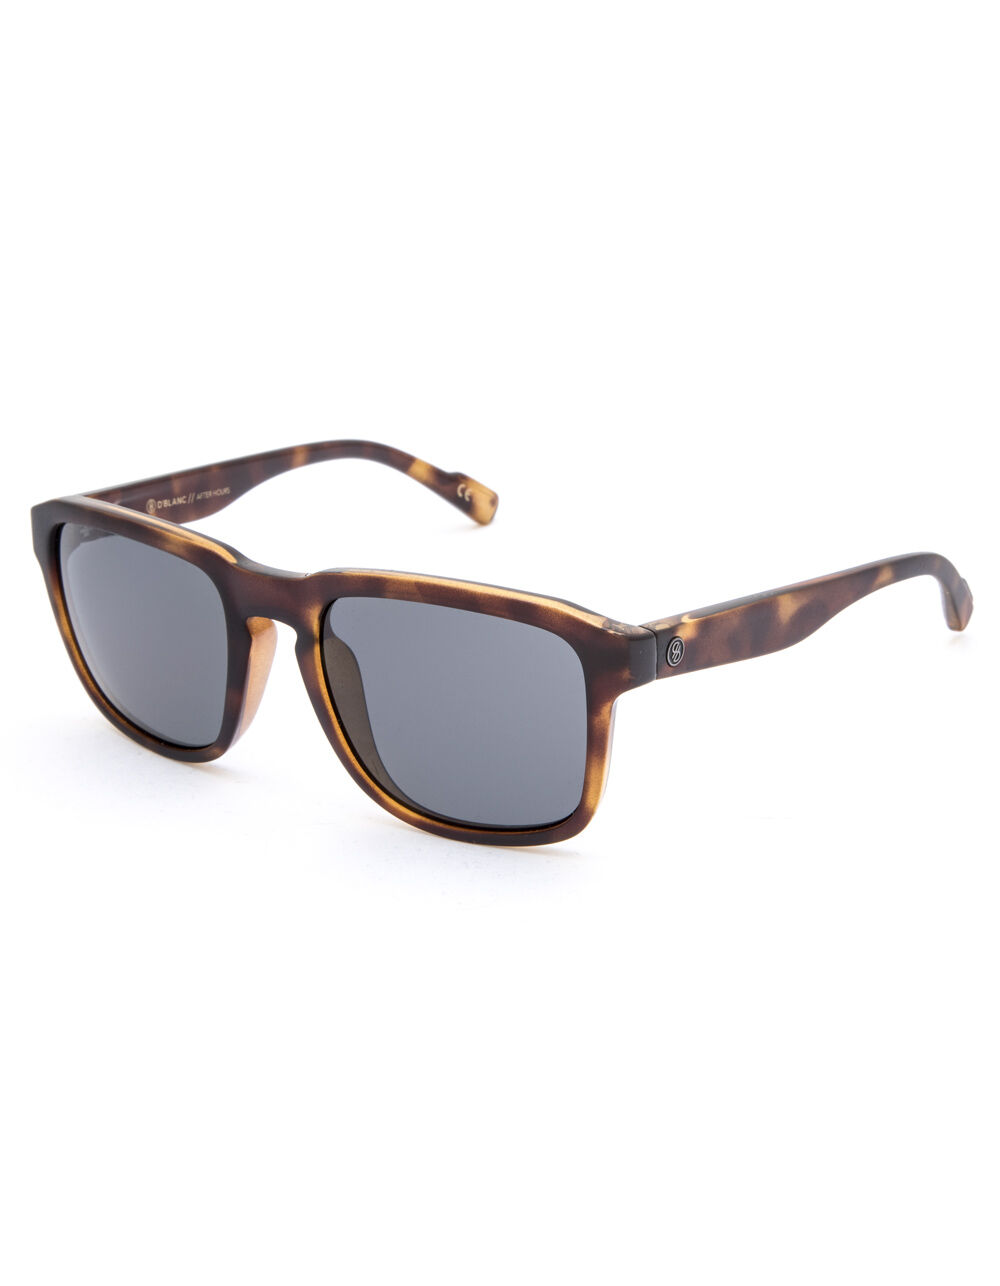 Image of D'BLANC AFTER HOURS VISSLA FLAT GLOSS TORT & COBALT POLARIZED SUNGLASSES